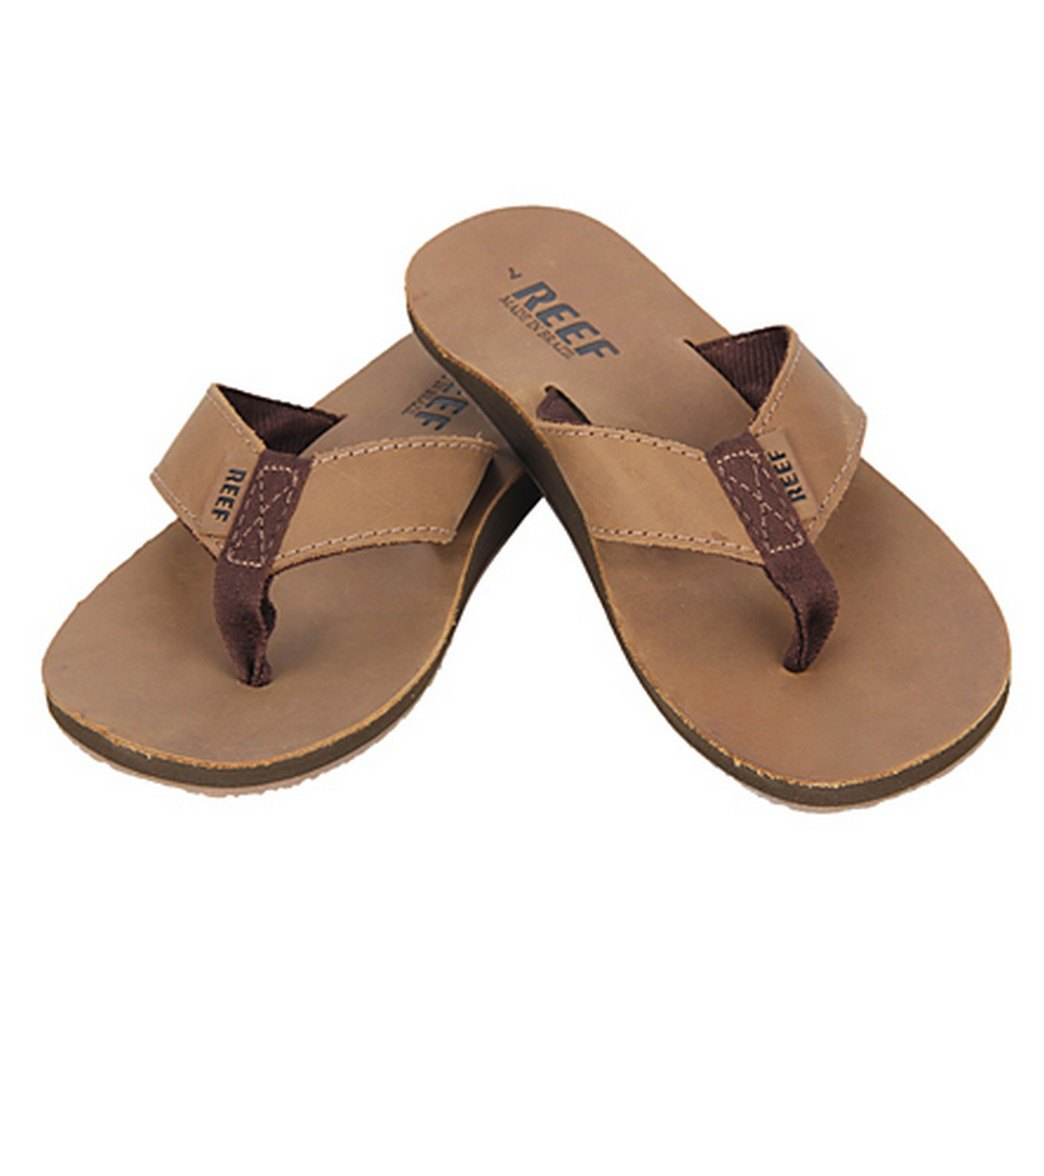 ebe56094718 Reef Guy s Leather Smoothy Flip Flop at SwimOutlet.com - Free Shipping